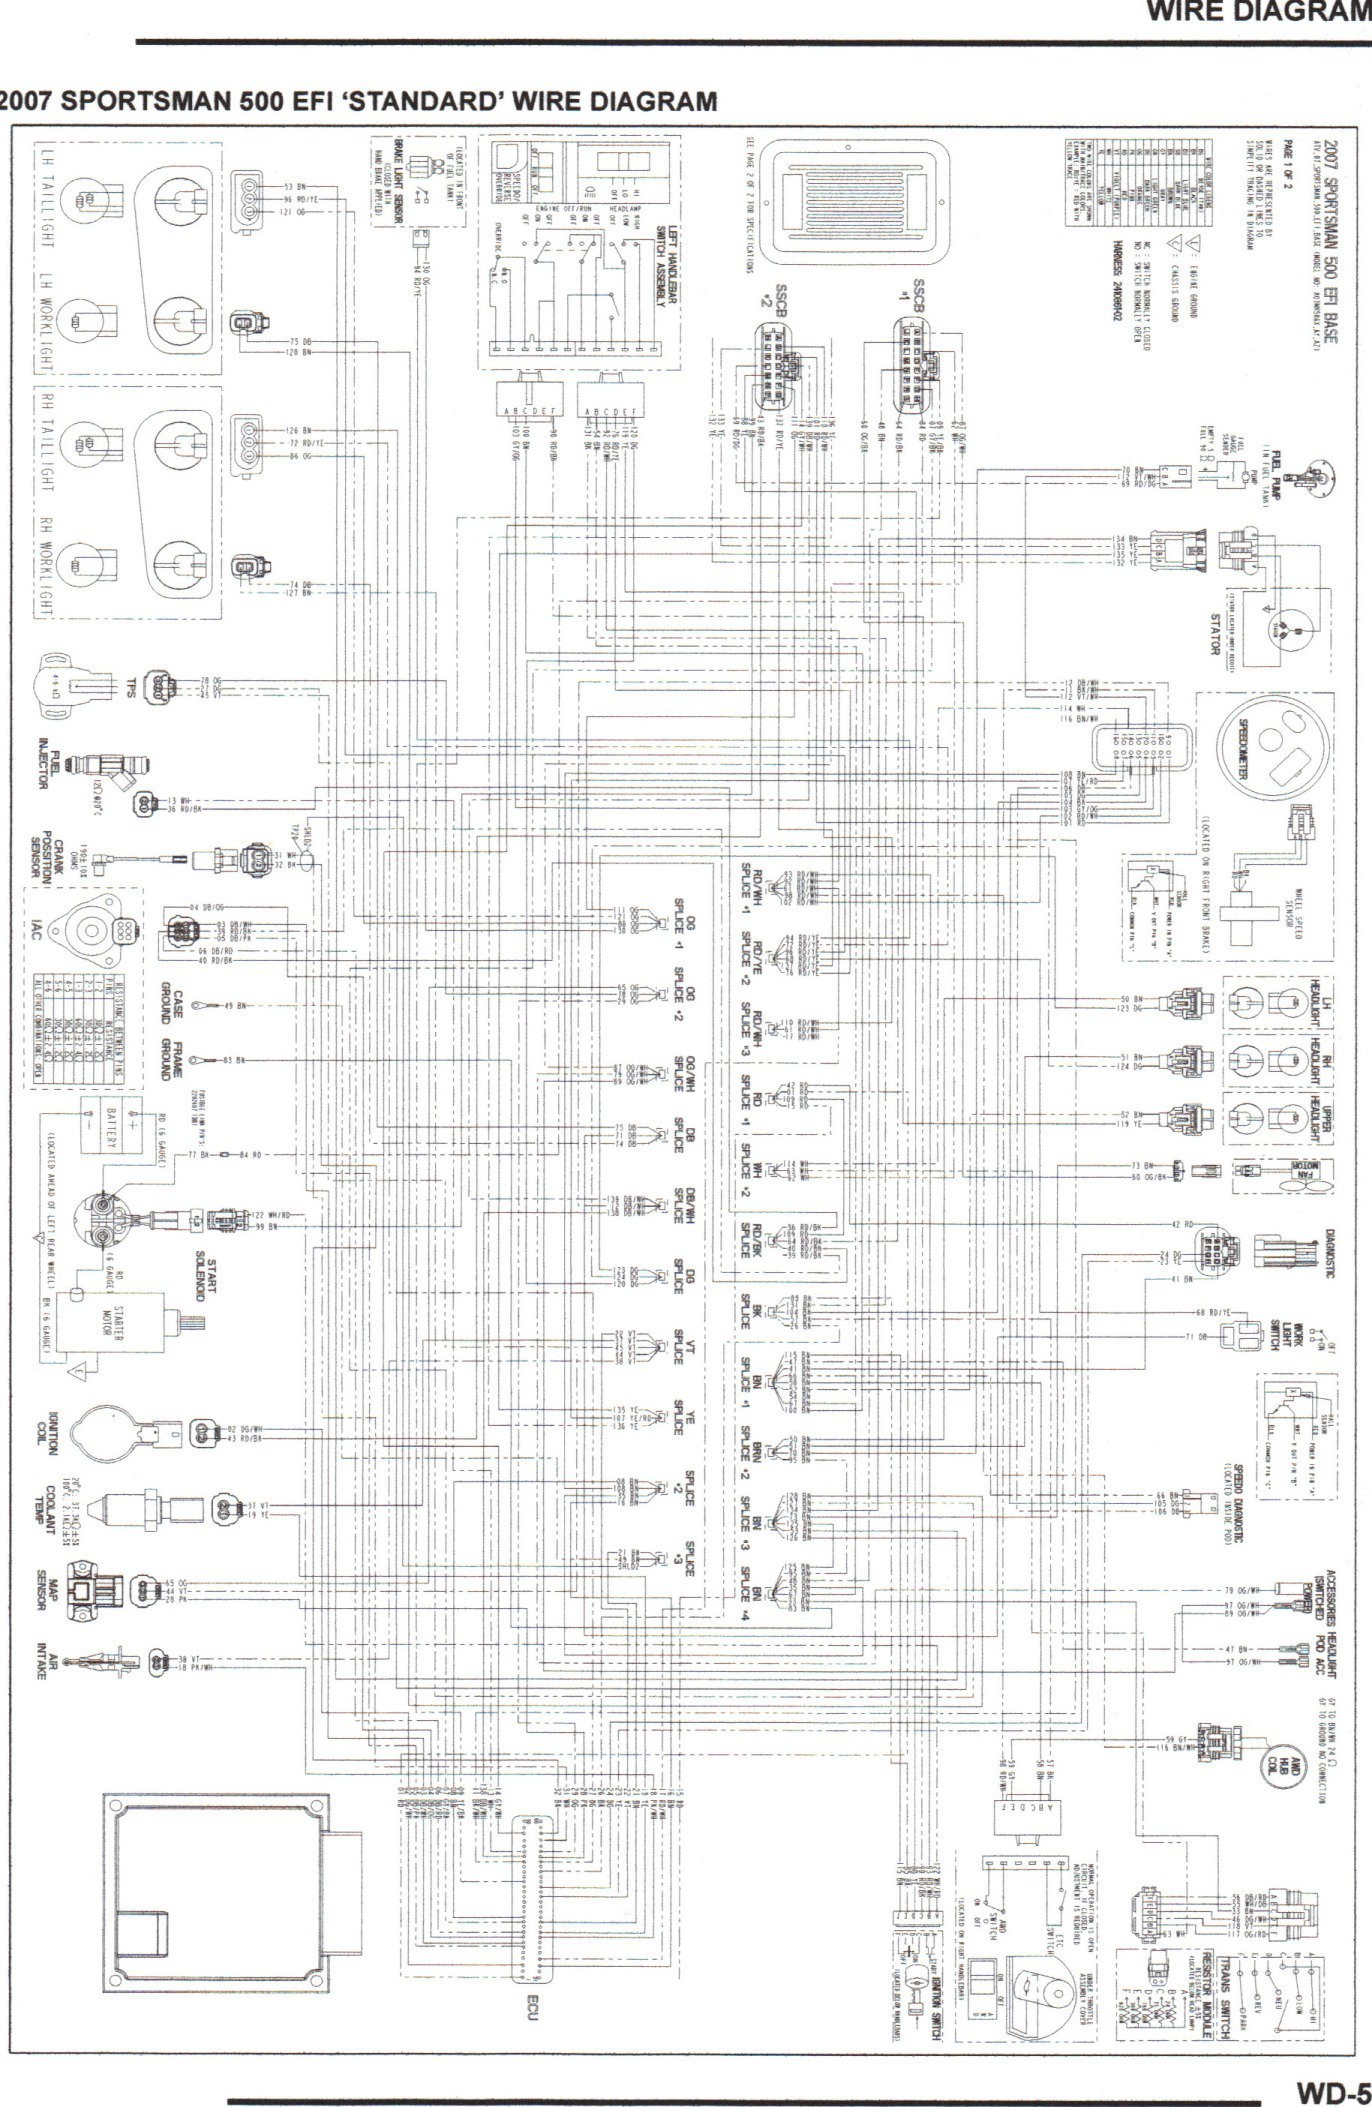 hight resolution of wiring diagram for polaris ranger 700 efi search for wiring diagrams u2022 rh stephenpoon co 2005